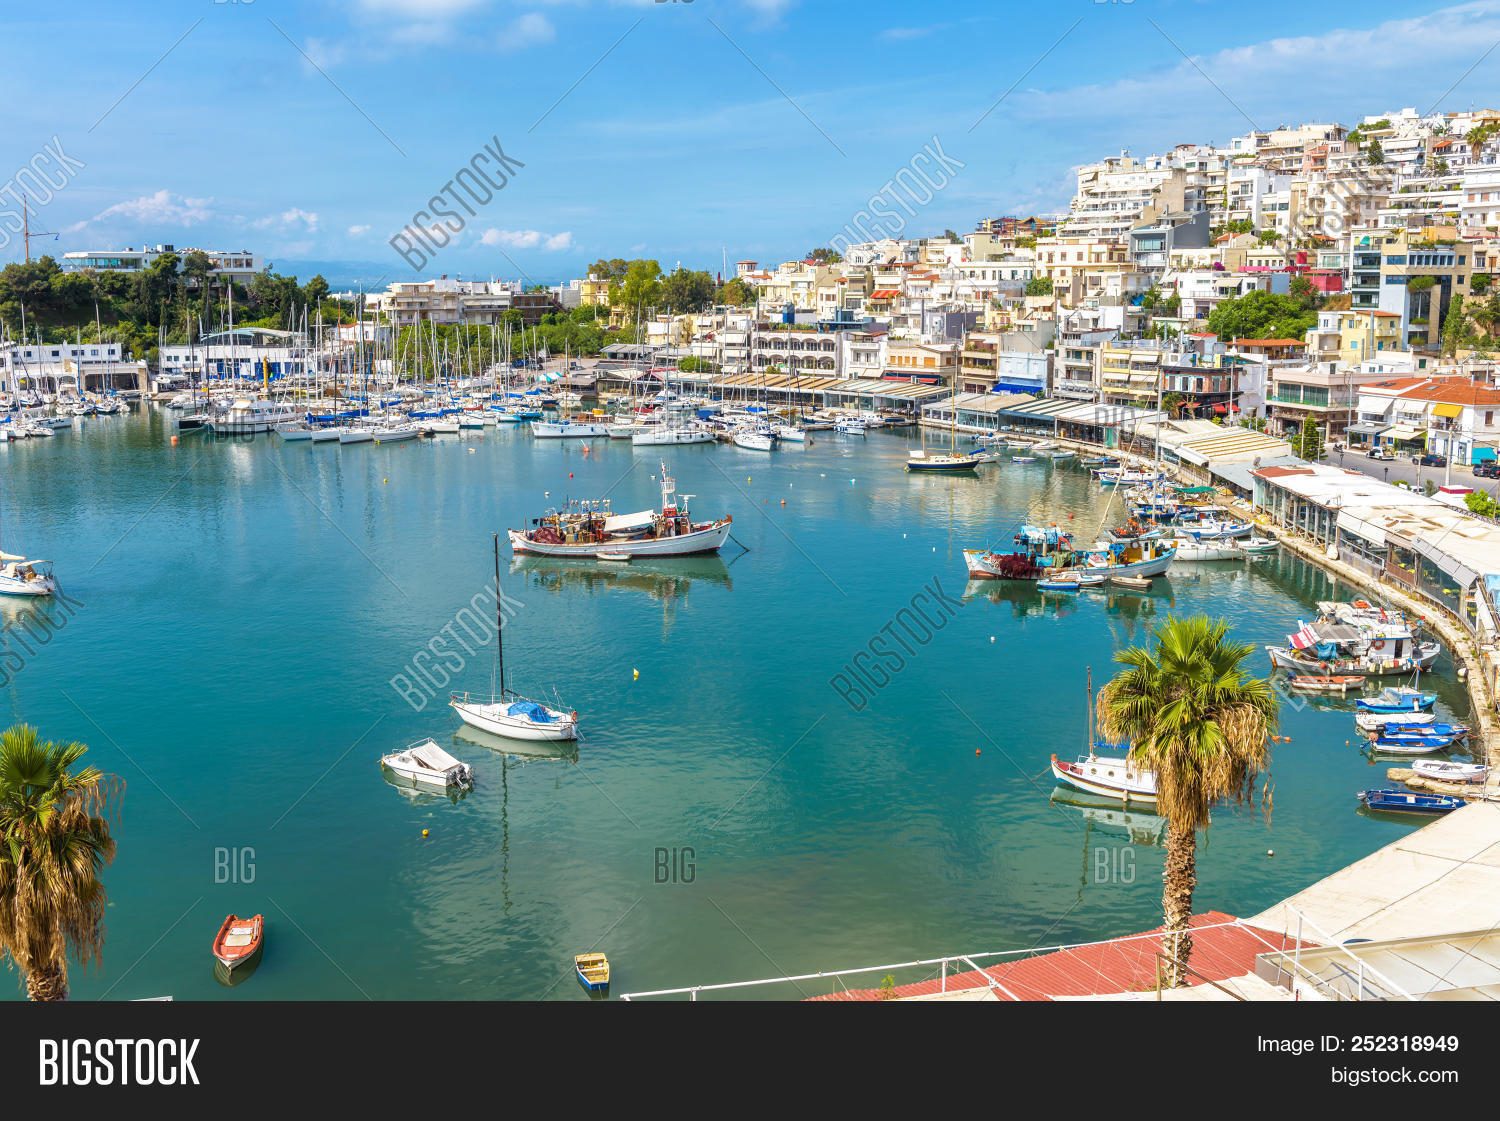 above,aegean,aerial,athens,bay,beautiful,blue,boat,city,cityscape,coast,destinations,dock,europe,european,greece,greek,harbor,harbour,holiday,idyllic,luxury,marina,marine,mediterranean,mikrolimano,outdoor,panorama,picturesque,piraeus,place,port,relax,sail,sailboat,scenery,scenic,sea,seaport,ship,summer,tourism,tourist,transportation,travel,trip,vacation,view,waterfront,yacht